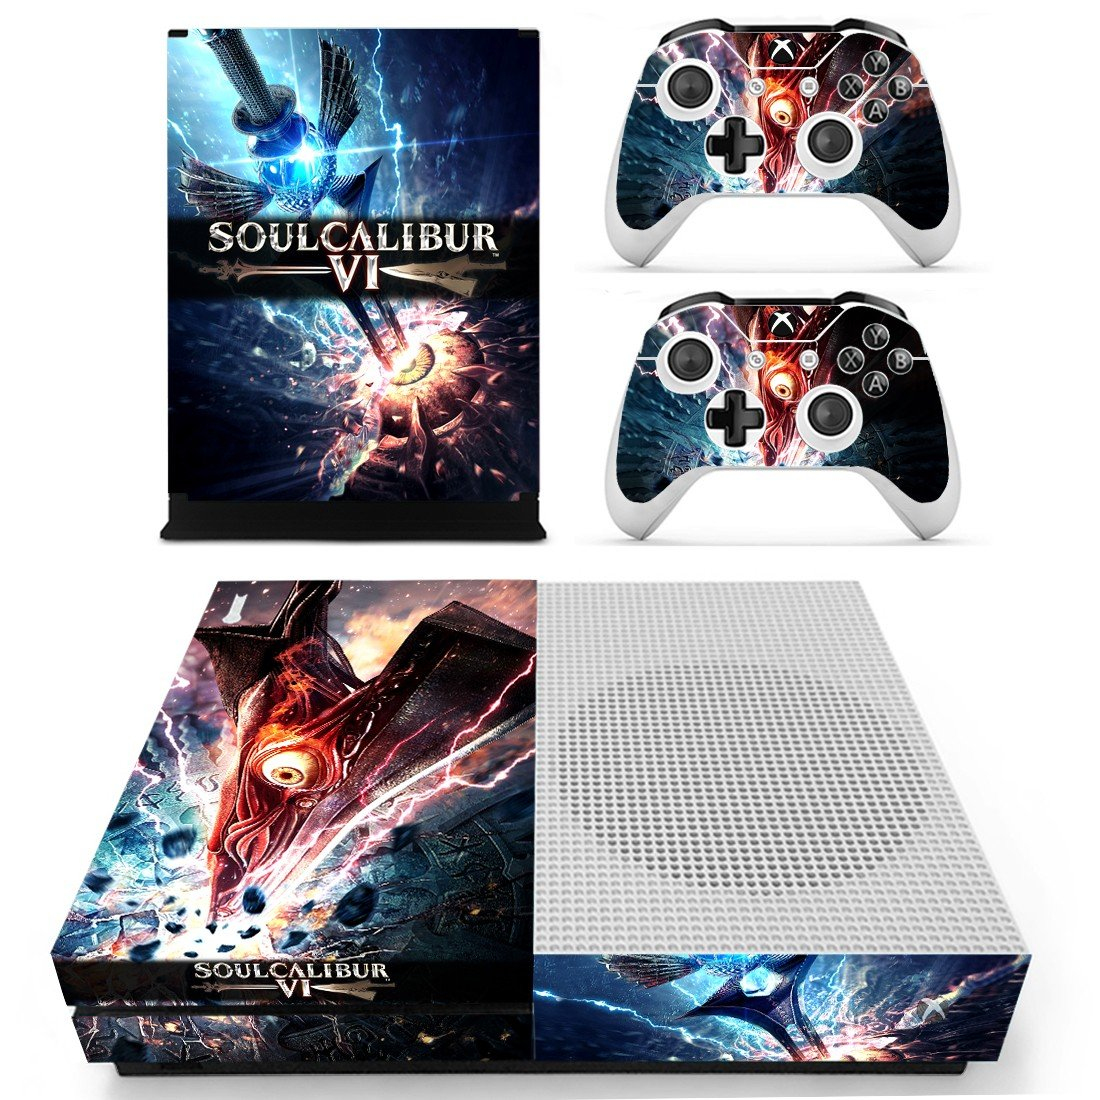 Soulcalibur 6 decal skin sticker for Xbox One S console and controllers